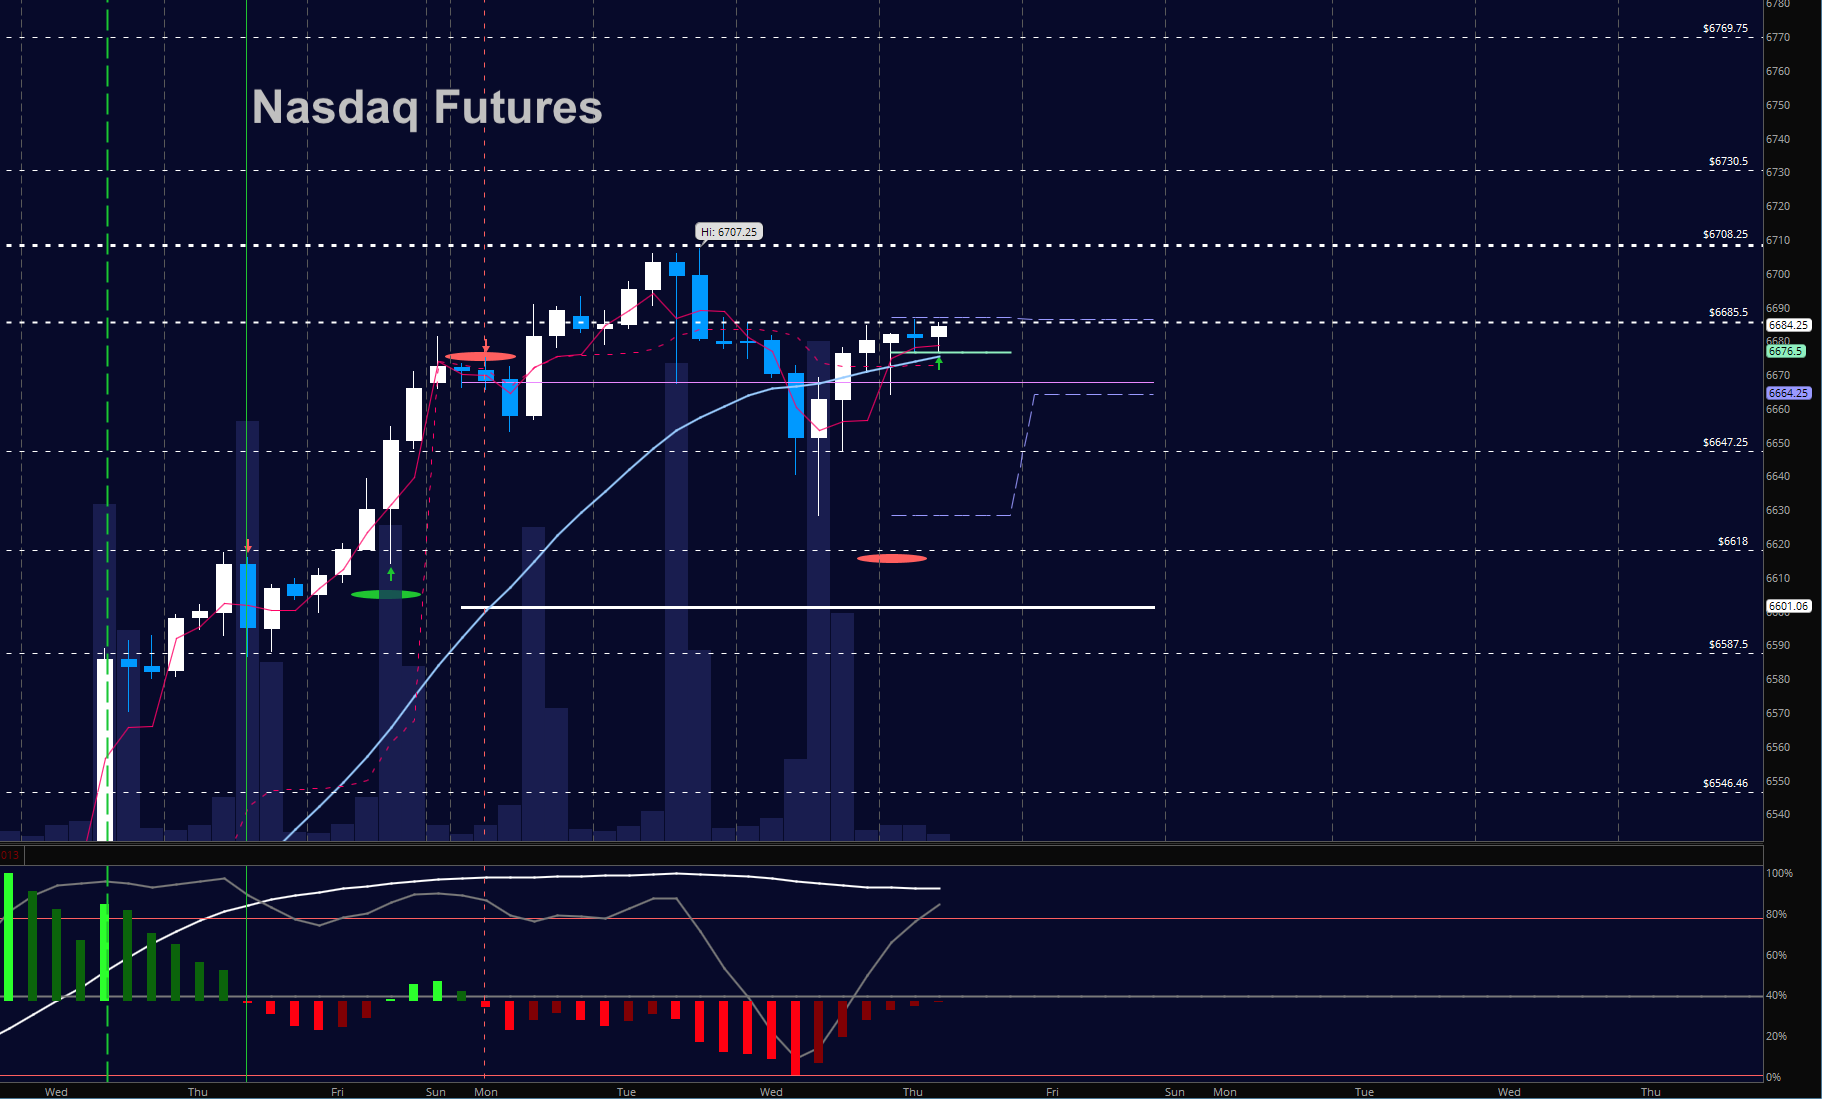 nasdaq futures january 11 trading chart new highs